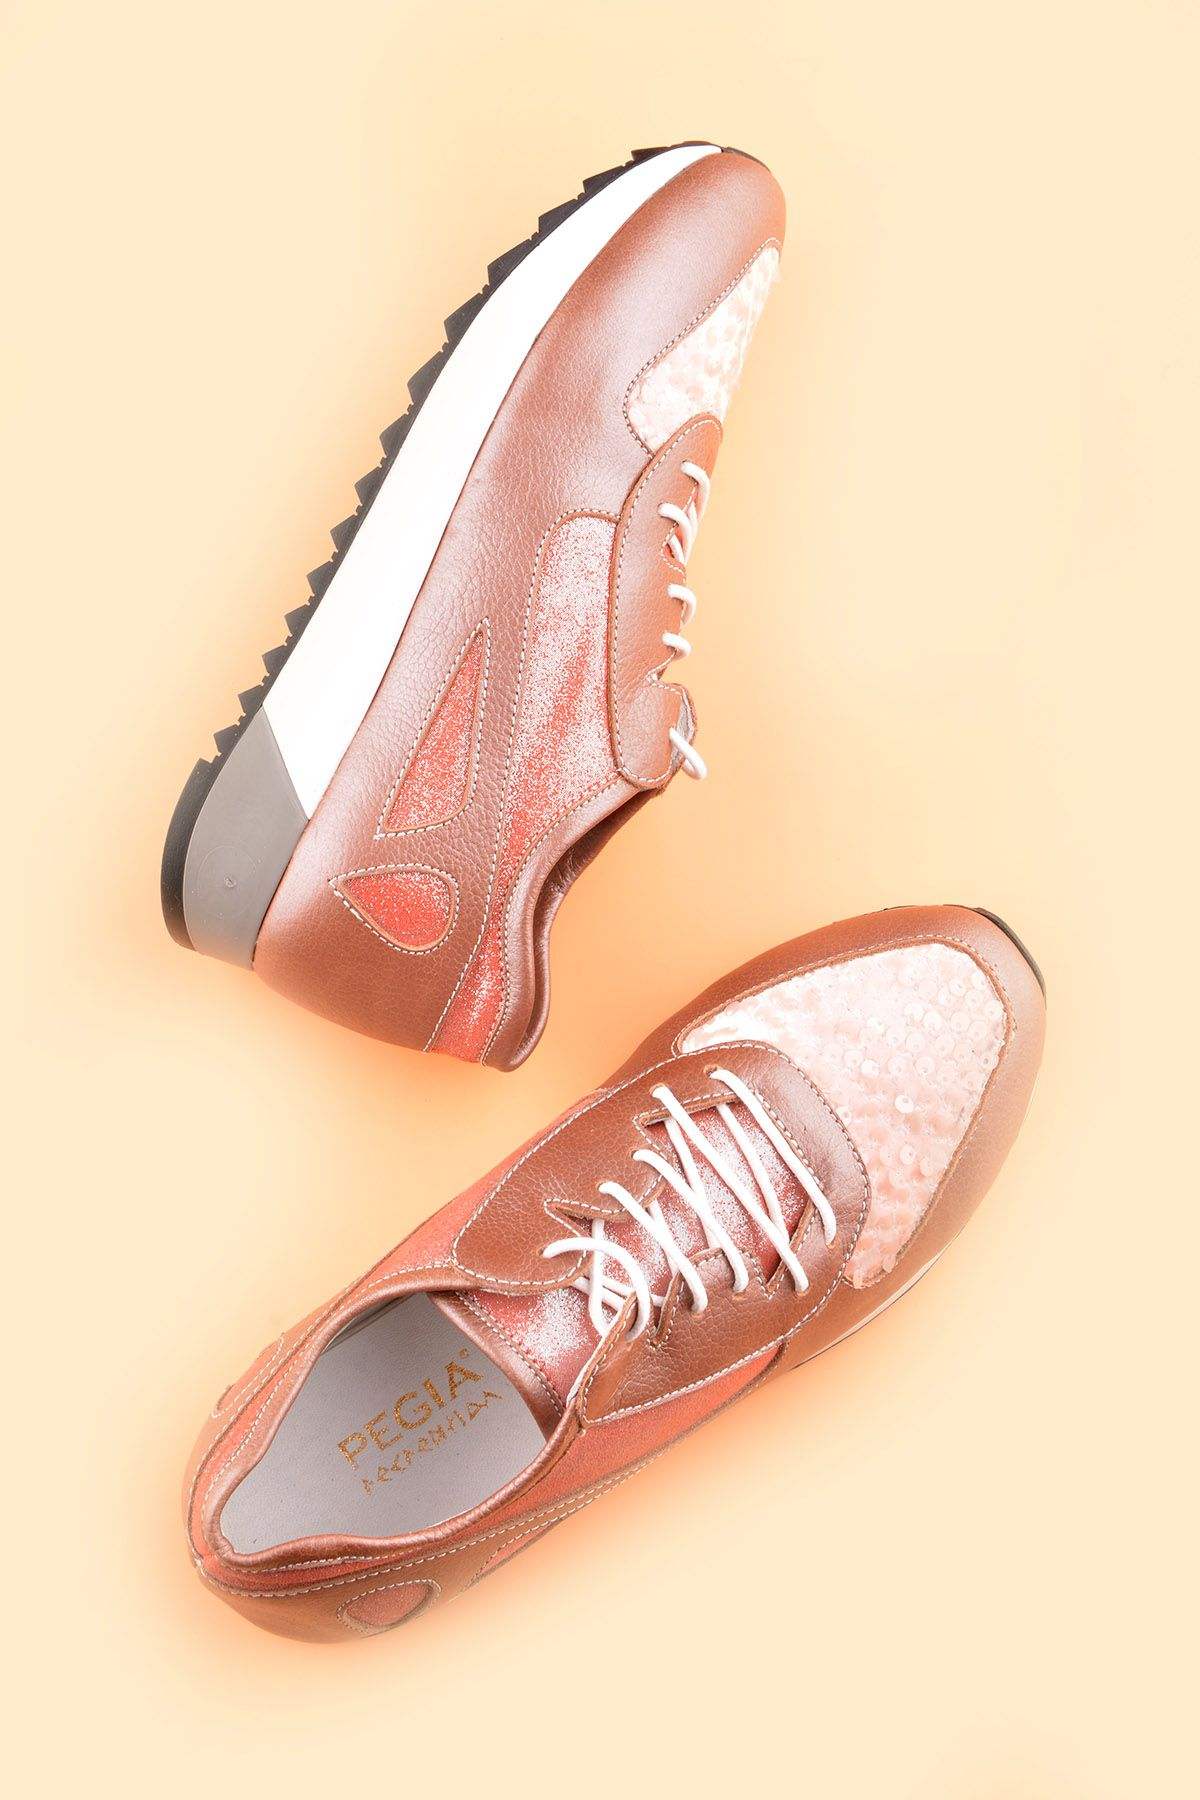 Pegia Anvers Sport Shoes From Genuine Leather Pink